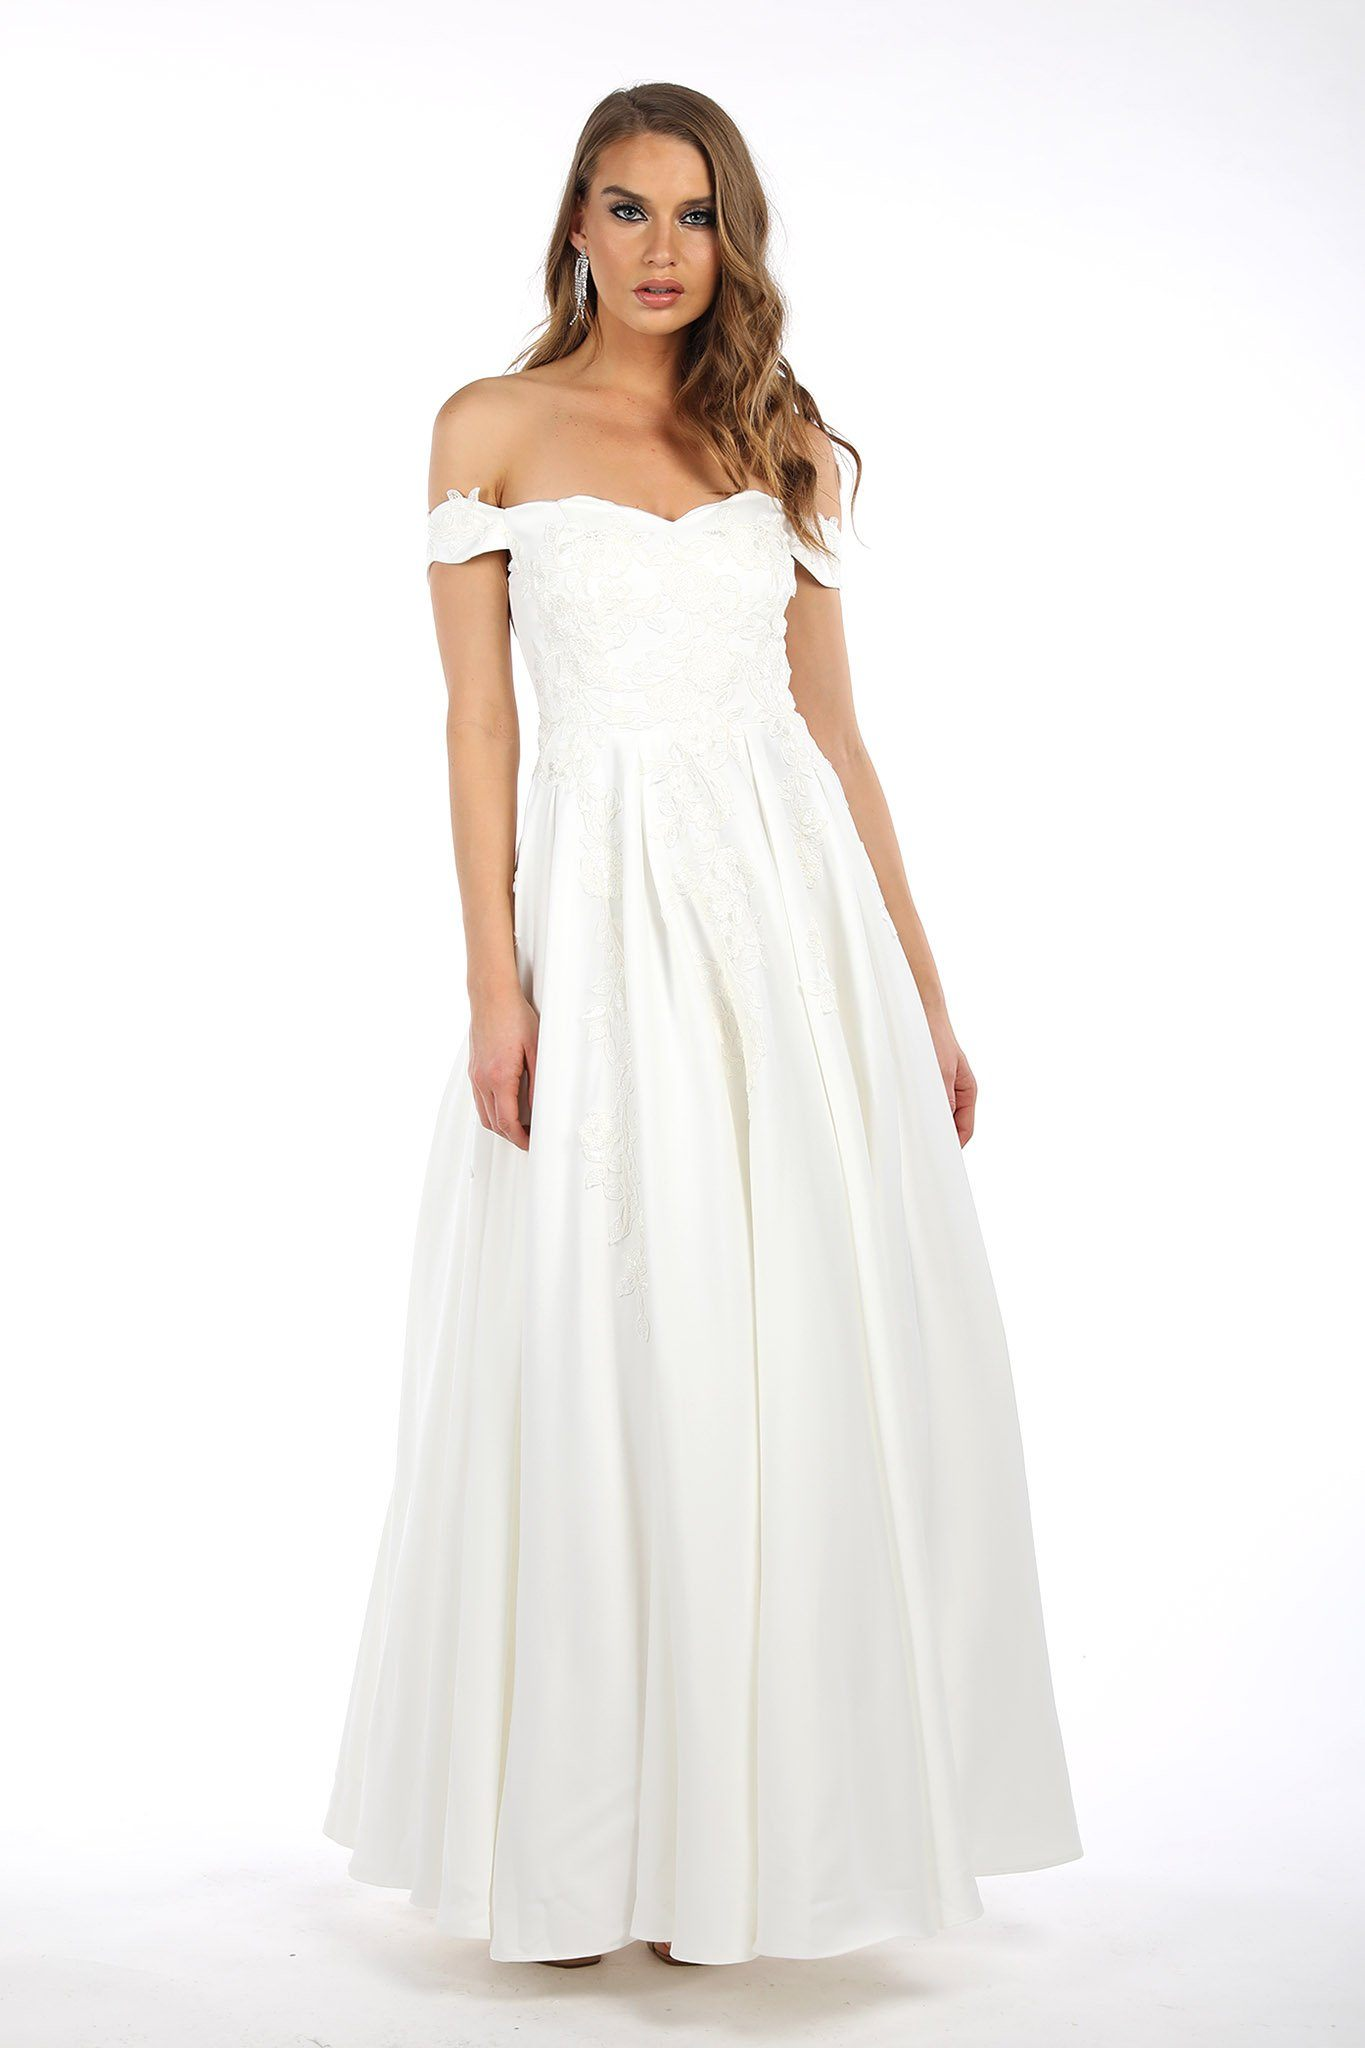 Ivory coloured ball gown in strapless off-shoulder sweetheart neckline, cap sleeves, lace detailing, open back, A-line flared floor-length skirt